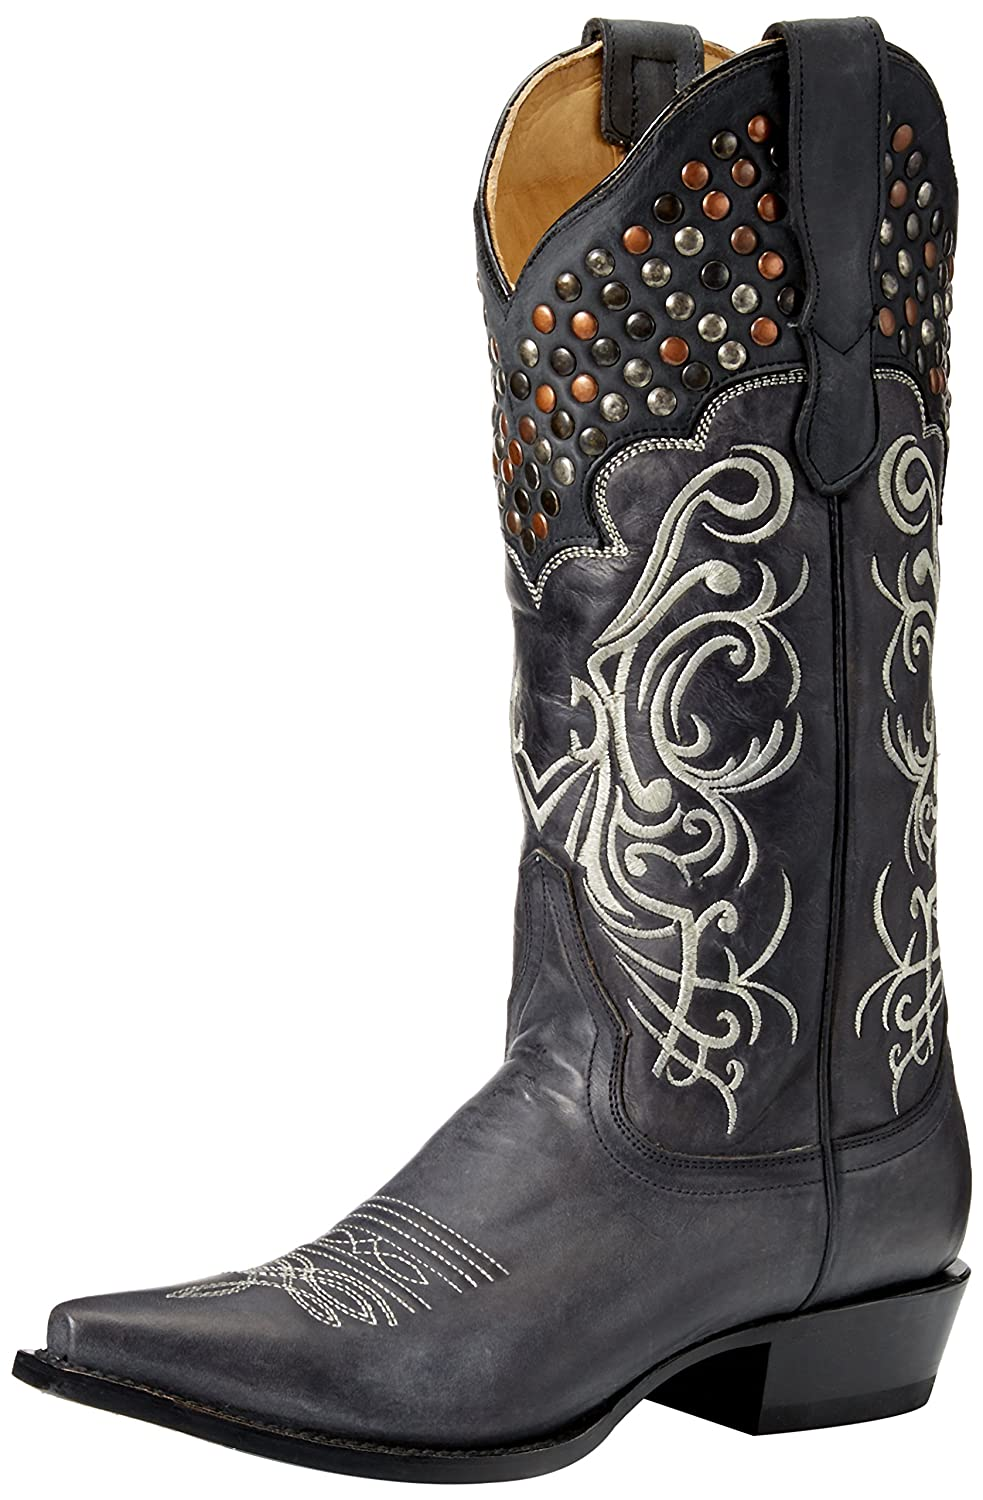 Stetson Women's Big Lila Riding Boot B010TVE1PO 9.5 D US|Black